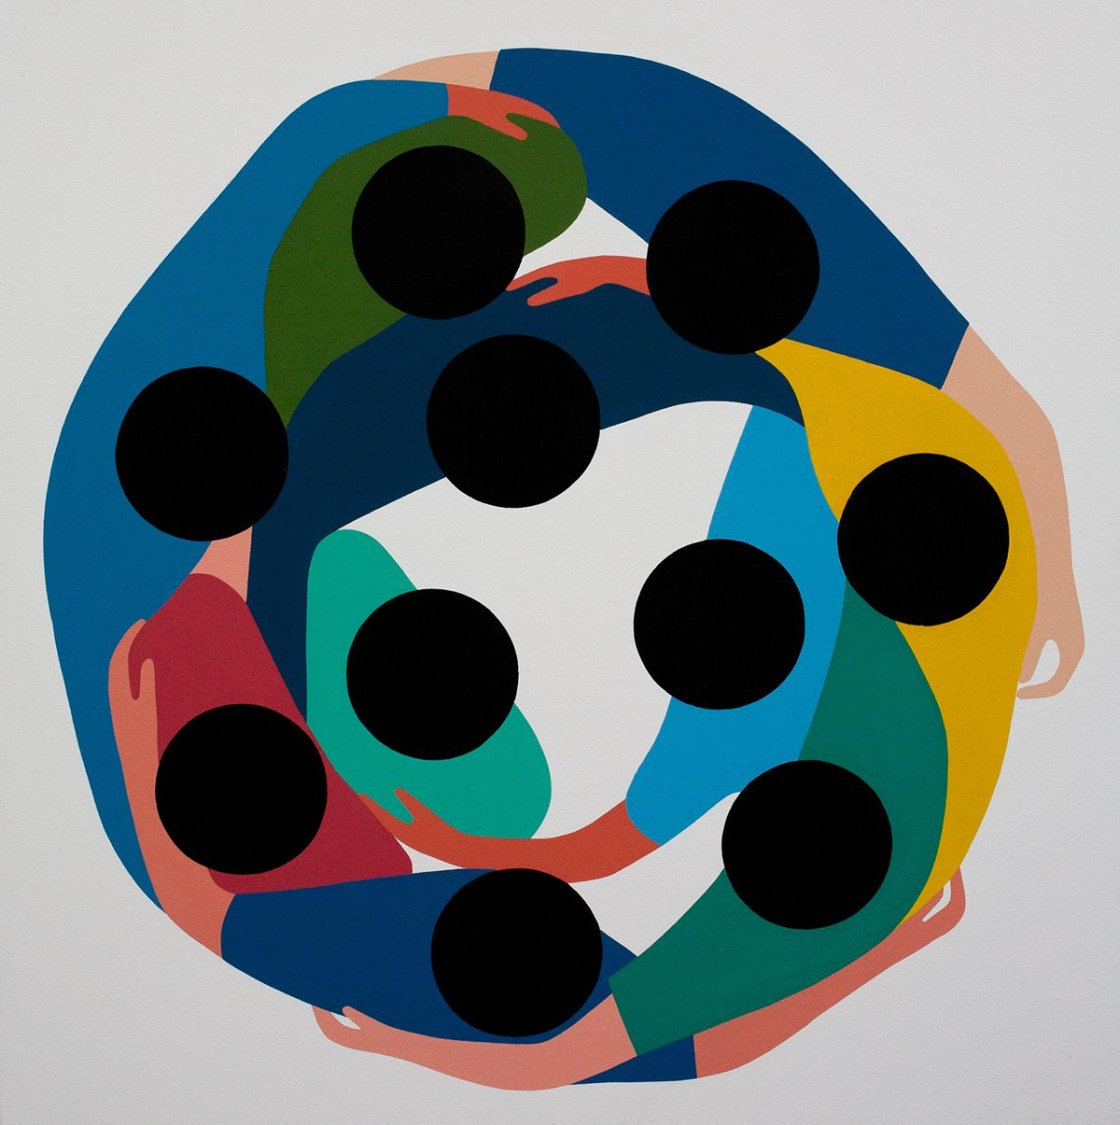 geoff_mcfetridge_paintings-designplayground_13